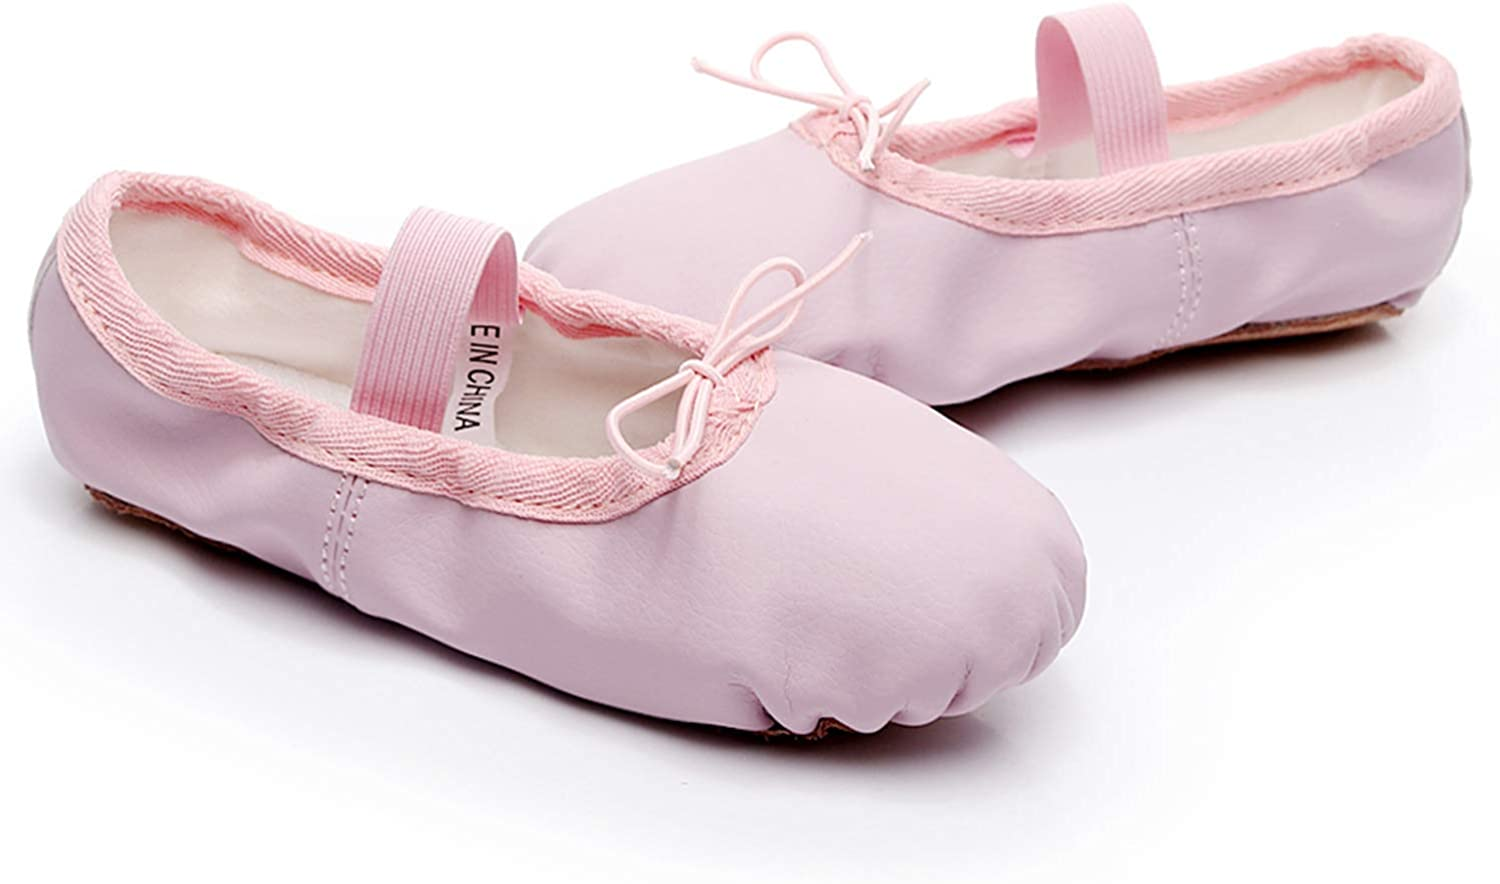 FEETCITY Girls Leather Ballet Dance Shoes Women Pointe Shoes Slippers Flats Yoga Shoe Toddler//Little Kid//Big Kid//Women